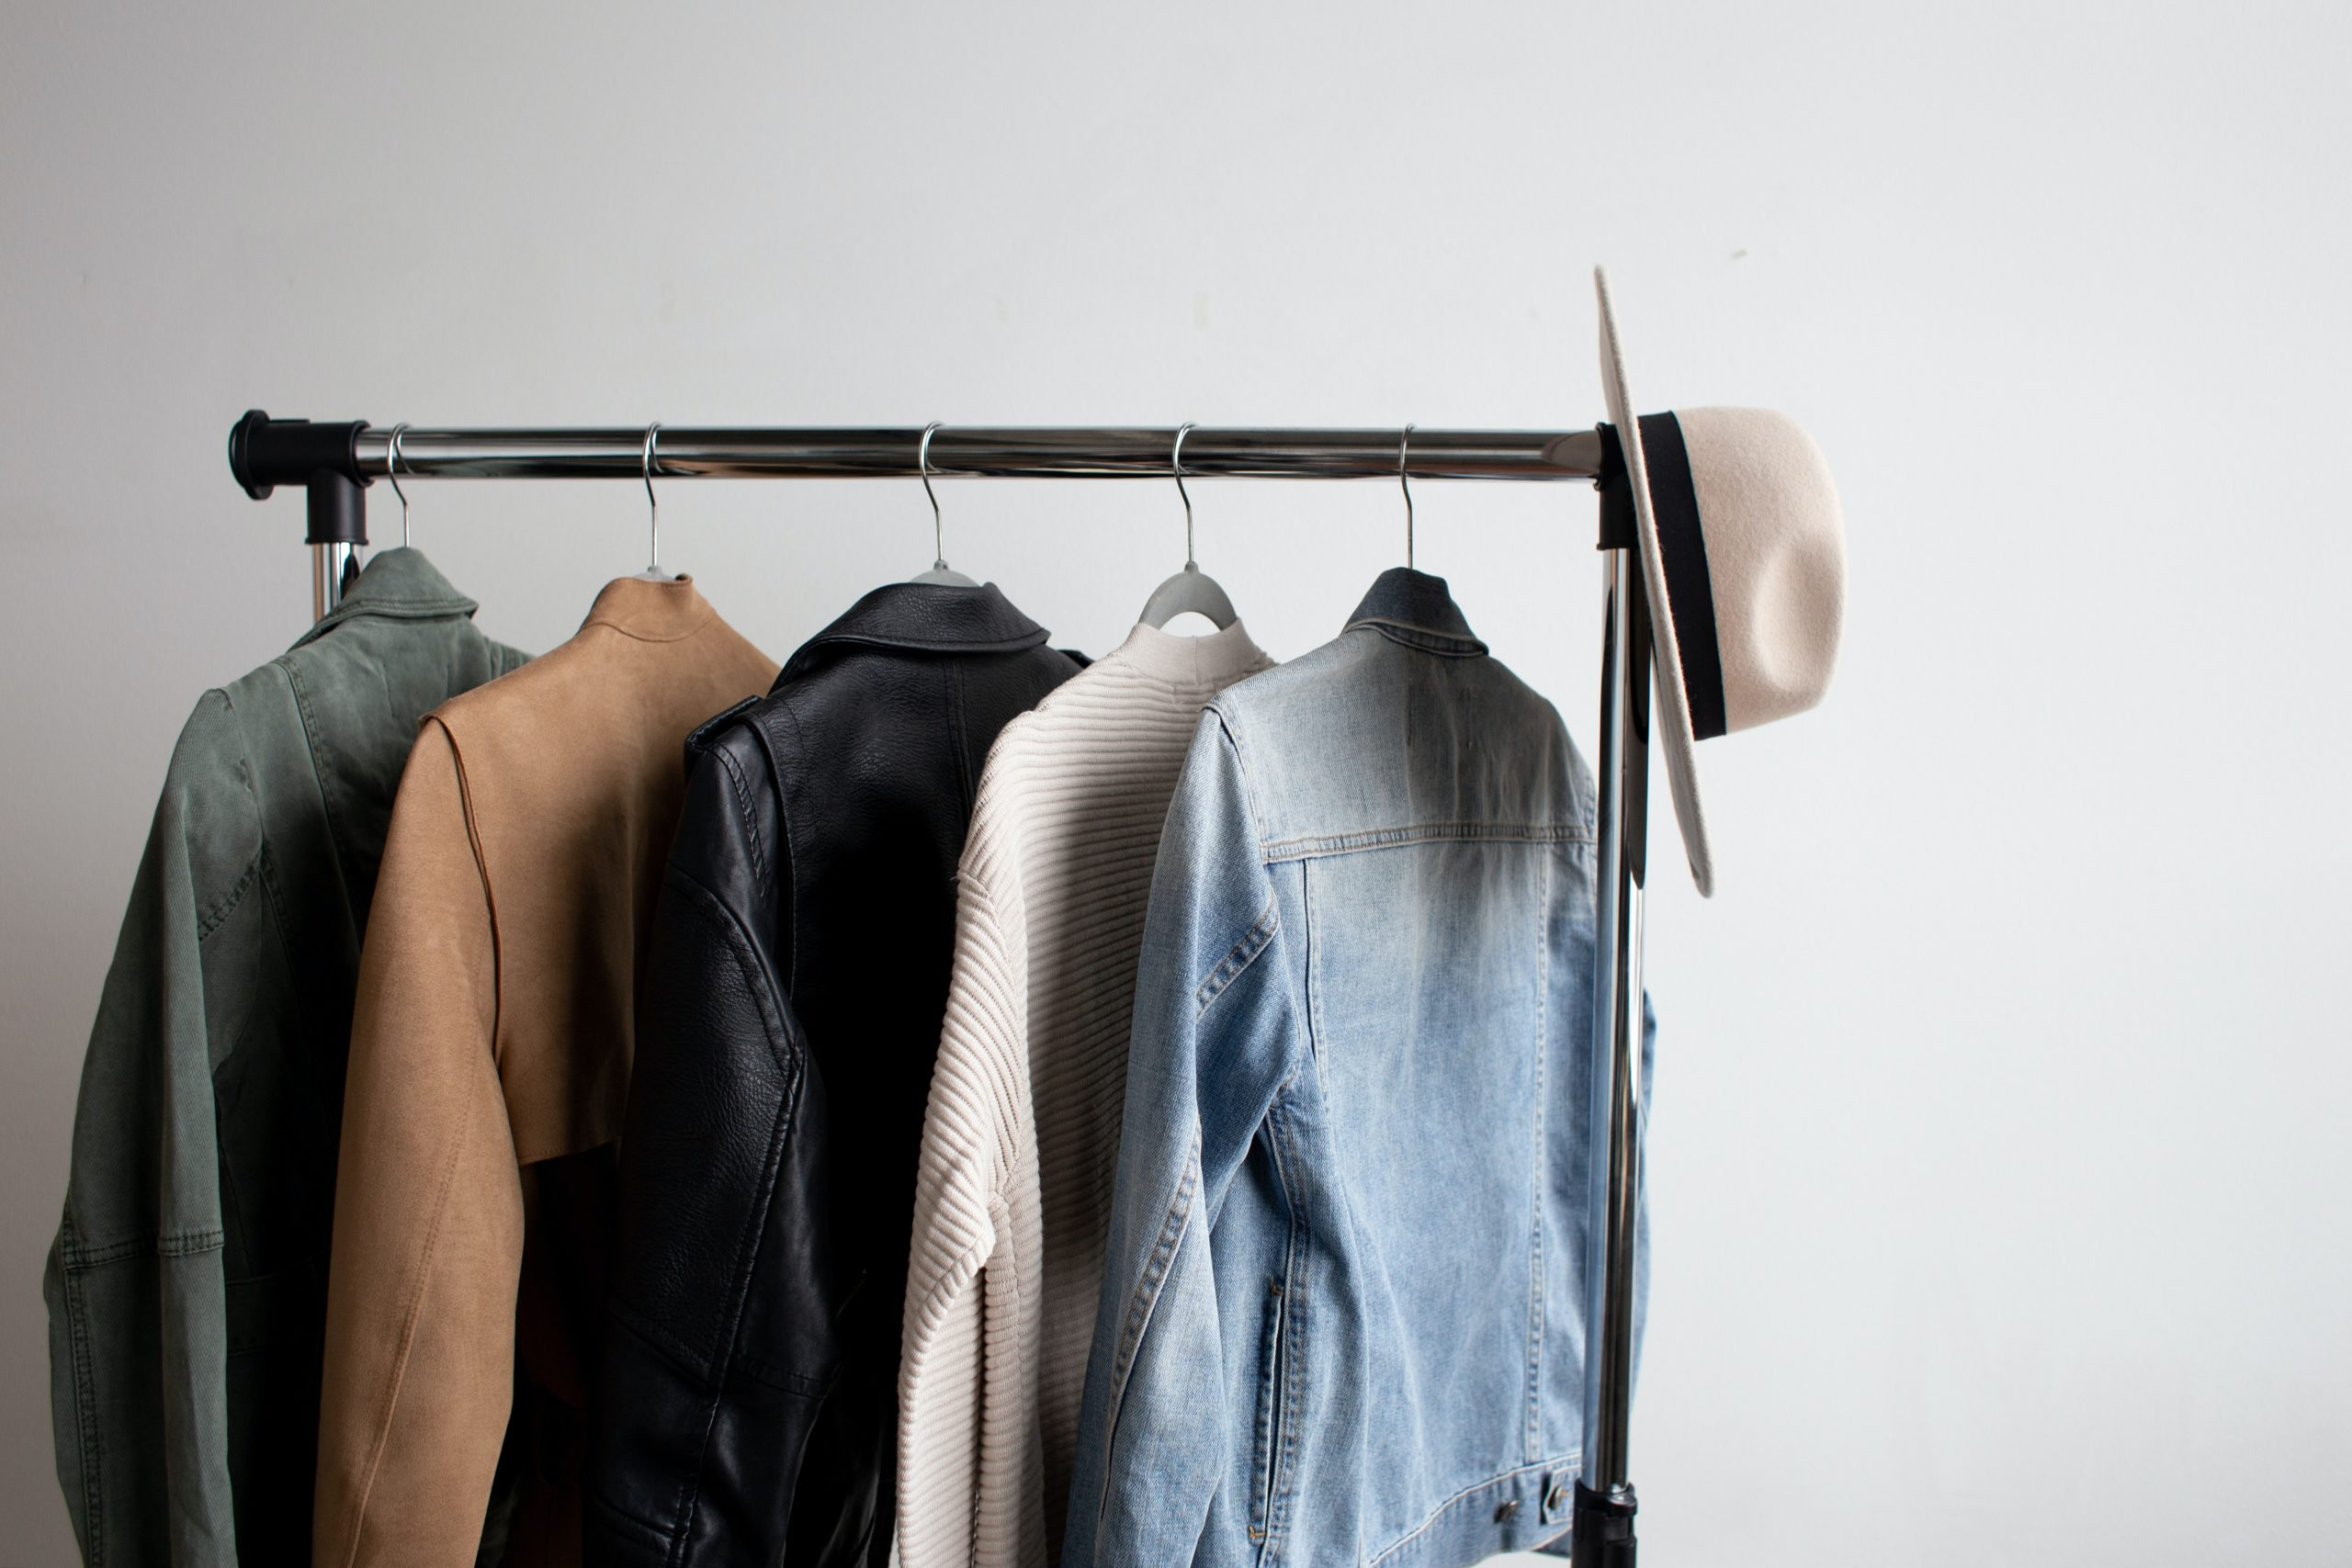 Jackets and a hat hanging on clothes rack